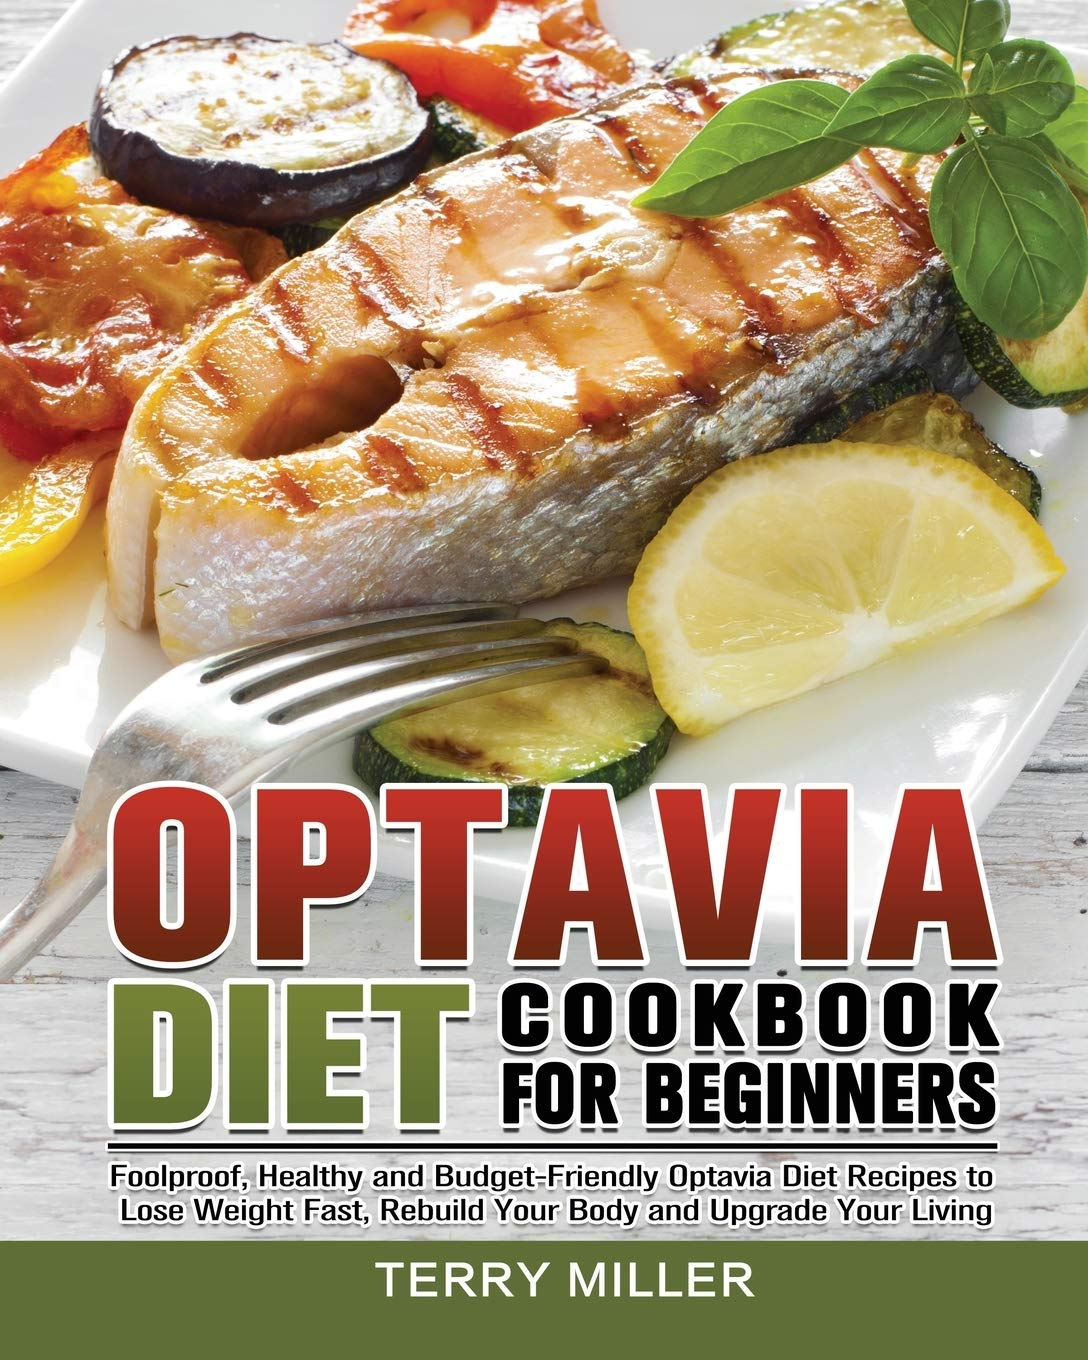 Optavia Diet Cookbook For Beginners: Foolproof, Healthy and Budget